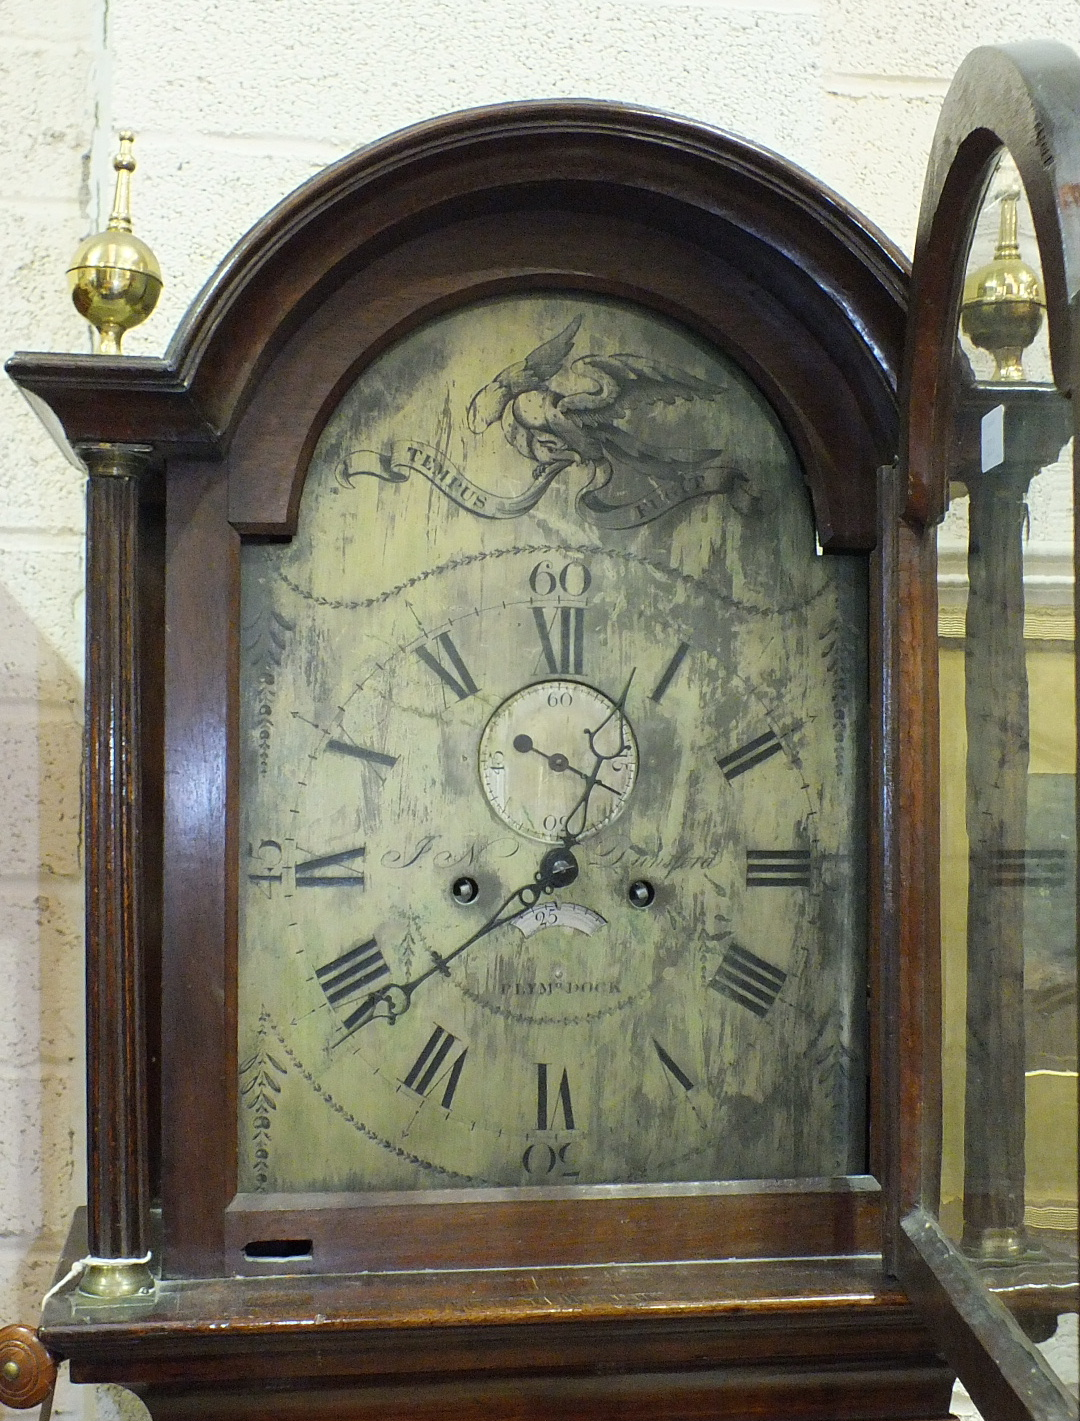 Lot 122 - Jas N Dunsford, Plymouth Dock, an early-19th century 8-day long case clock, the arched silvered dial